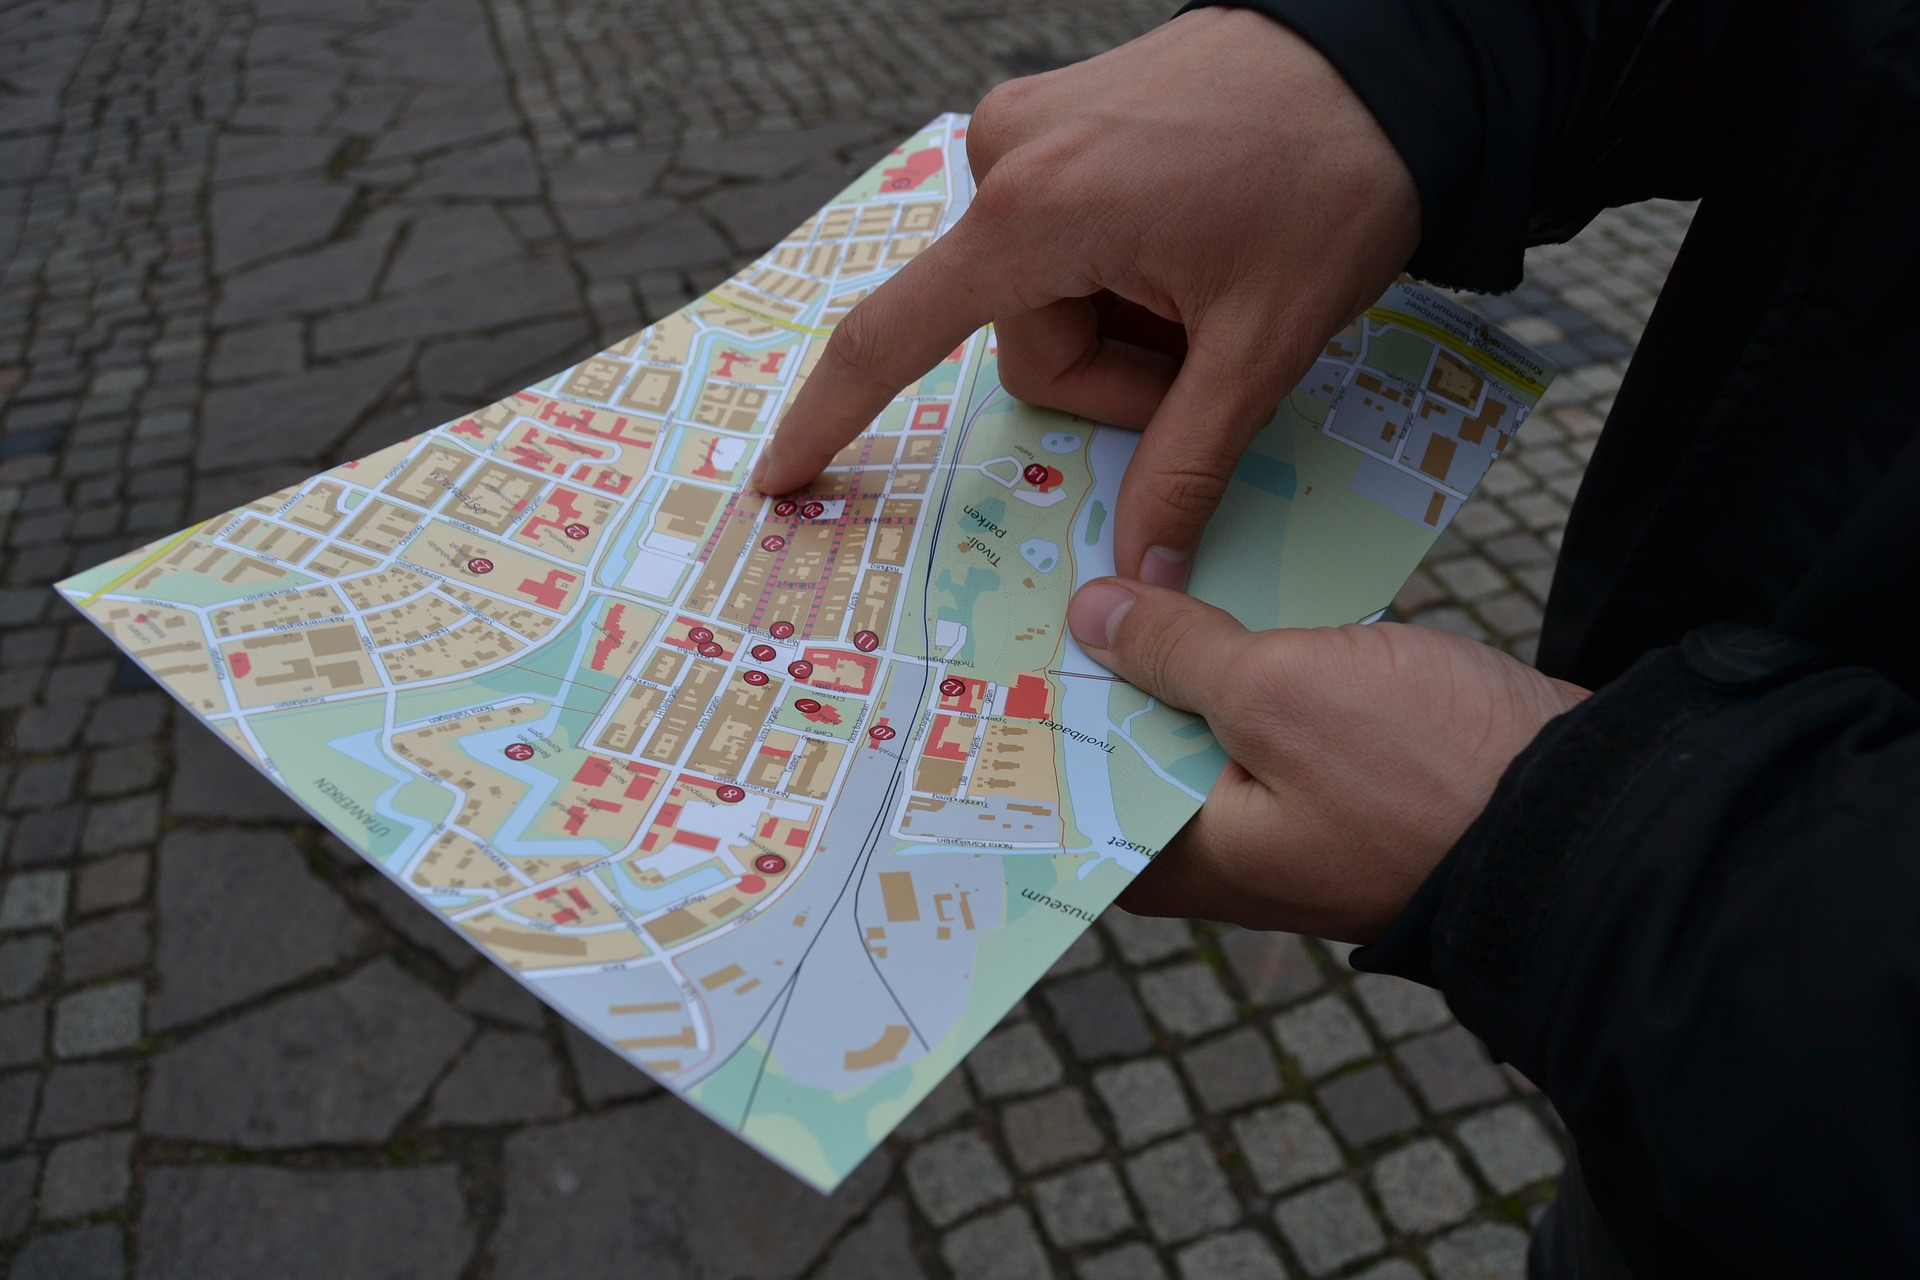 Hands holding a map, finger pointing to destination